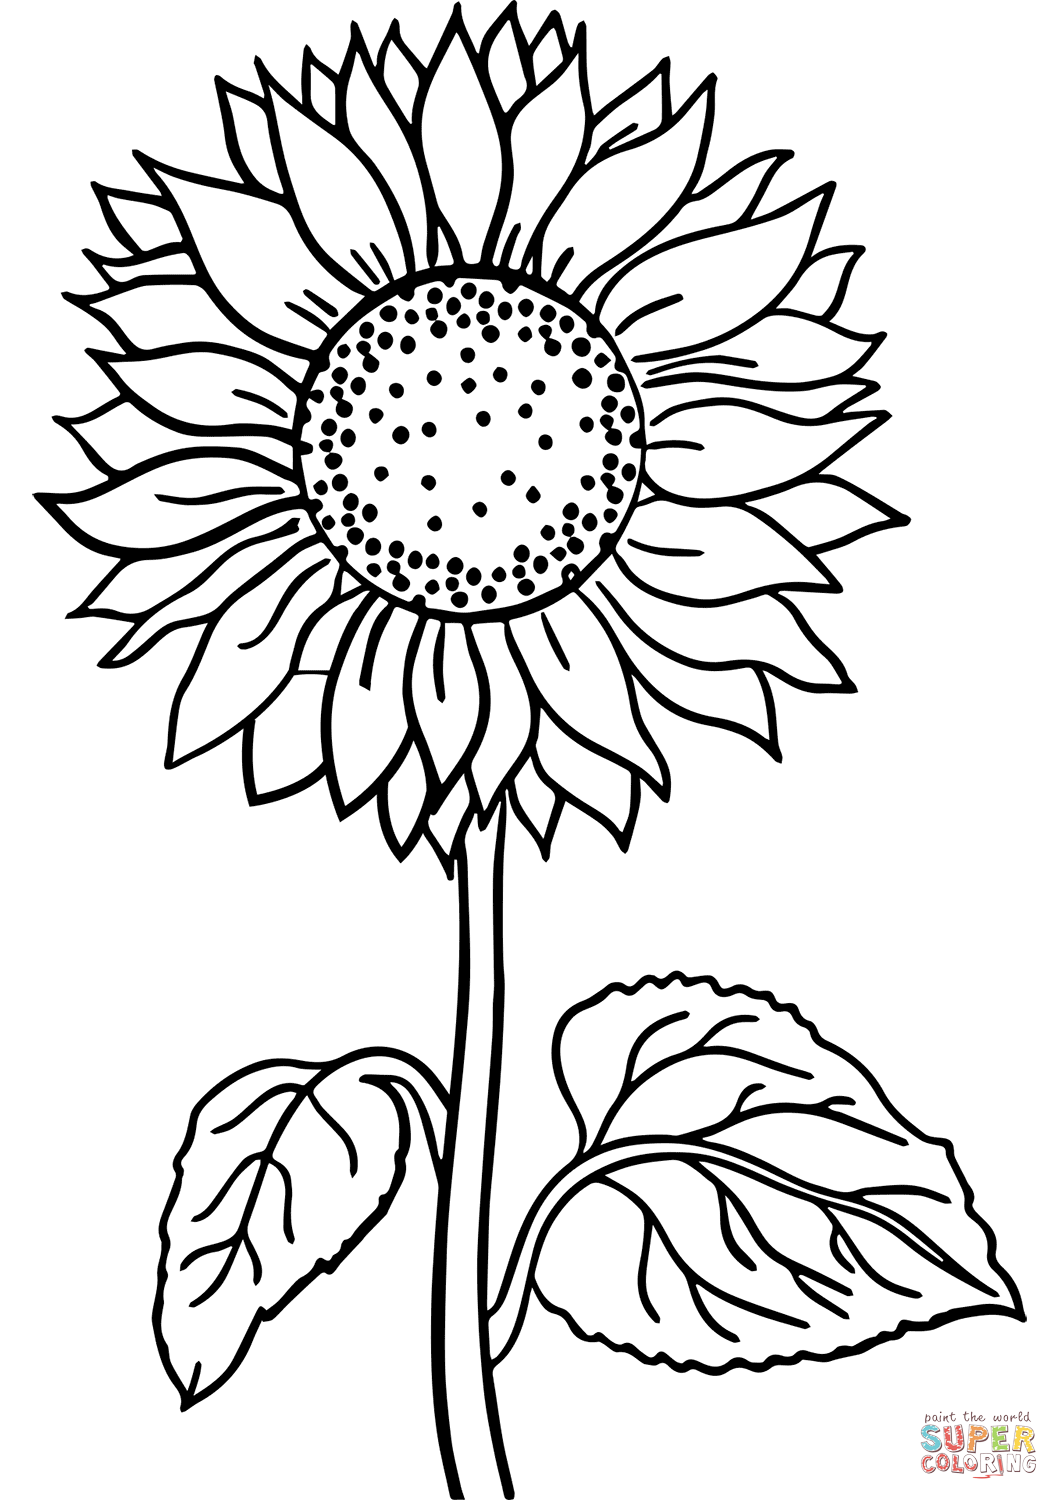 Sunflower Super Coloring Sunflower Coloring Pages Printable Flower Coloring Pages Free Coloring Pages